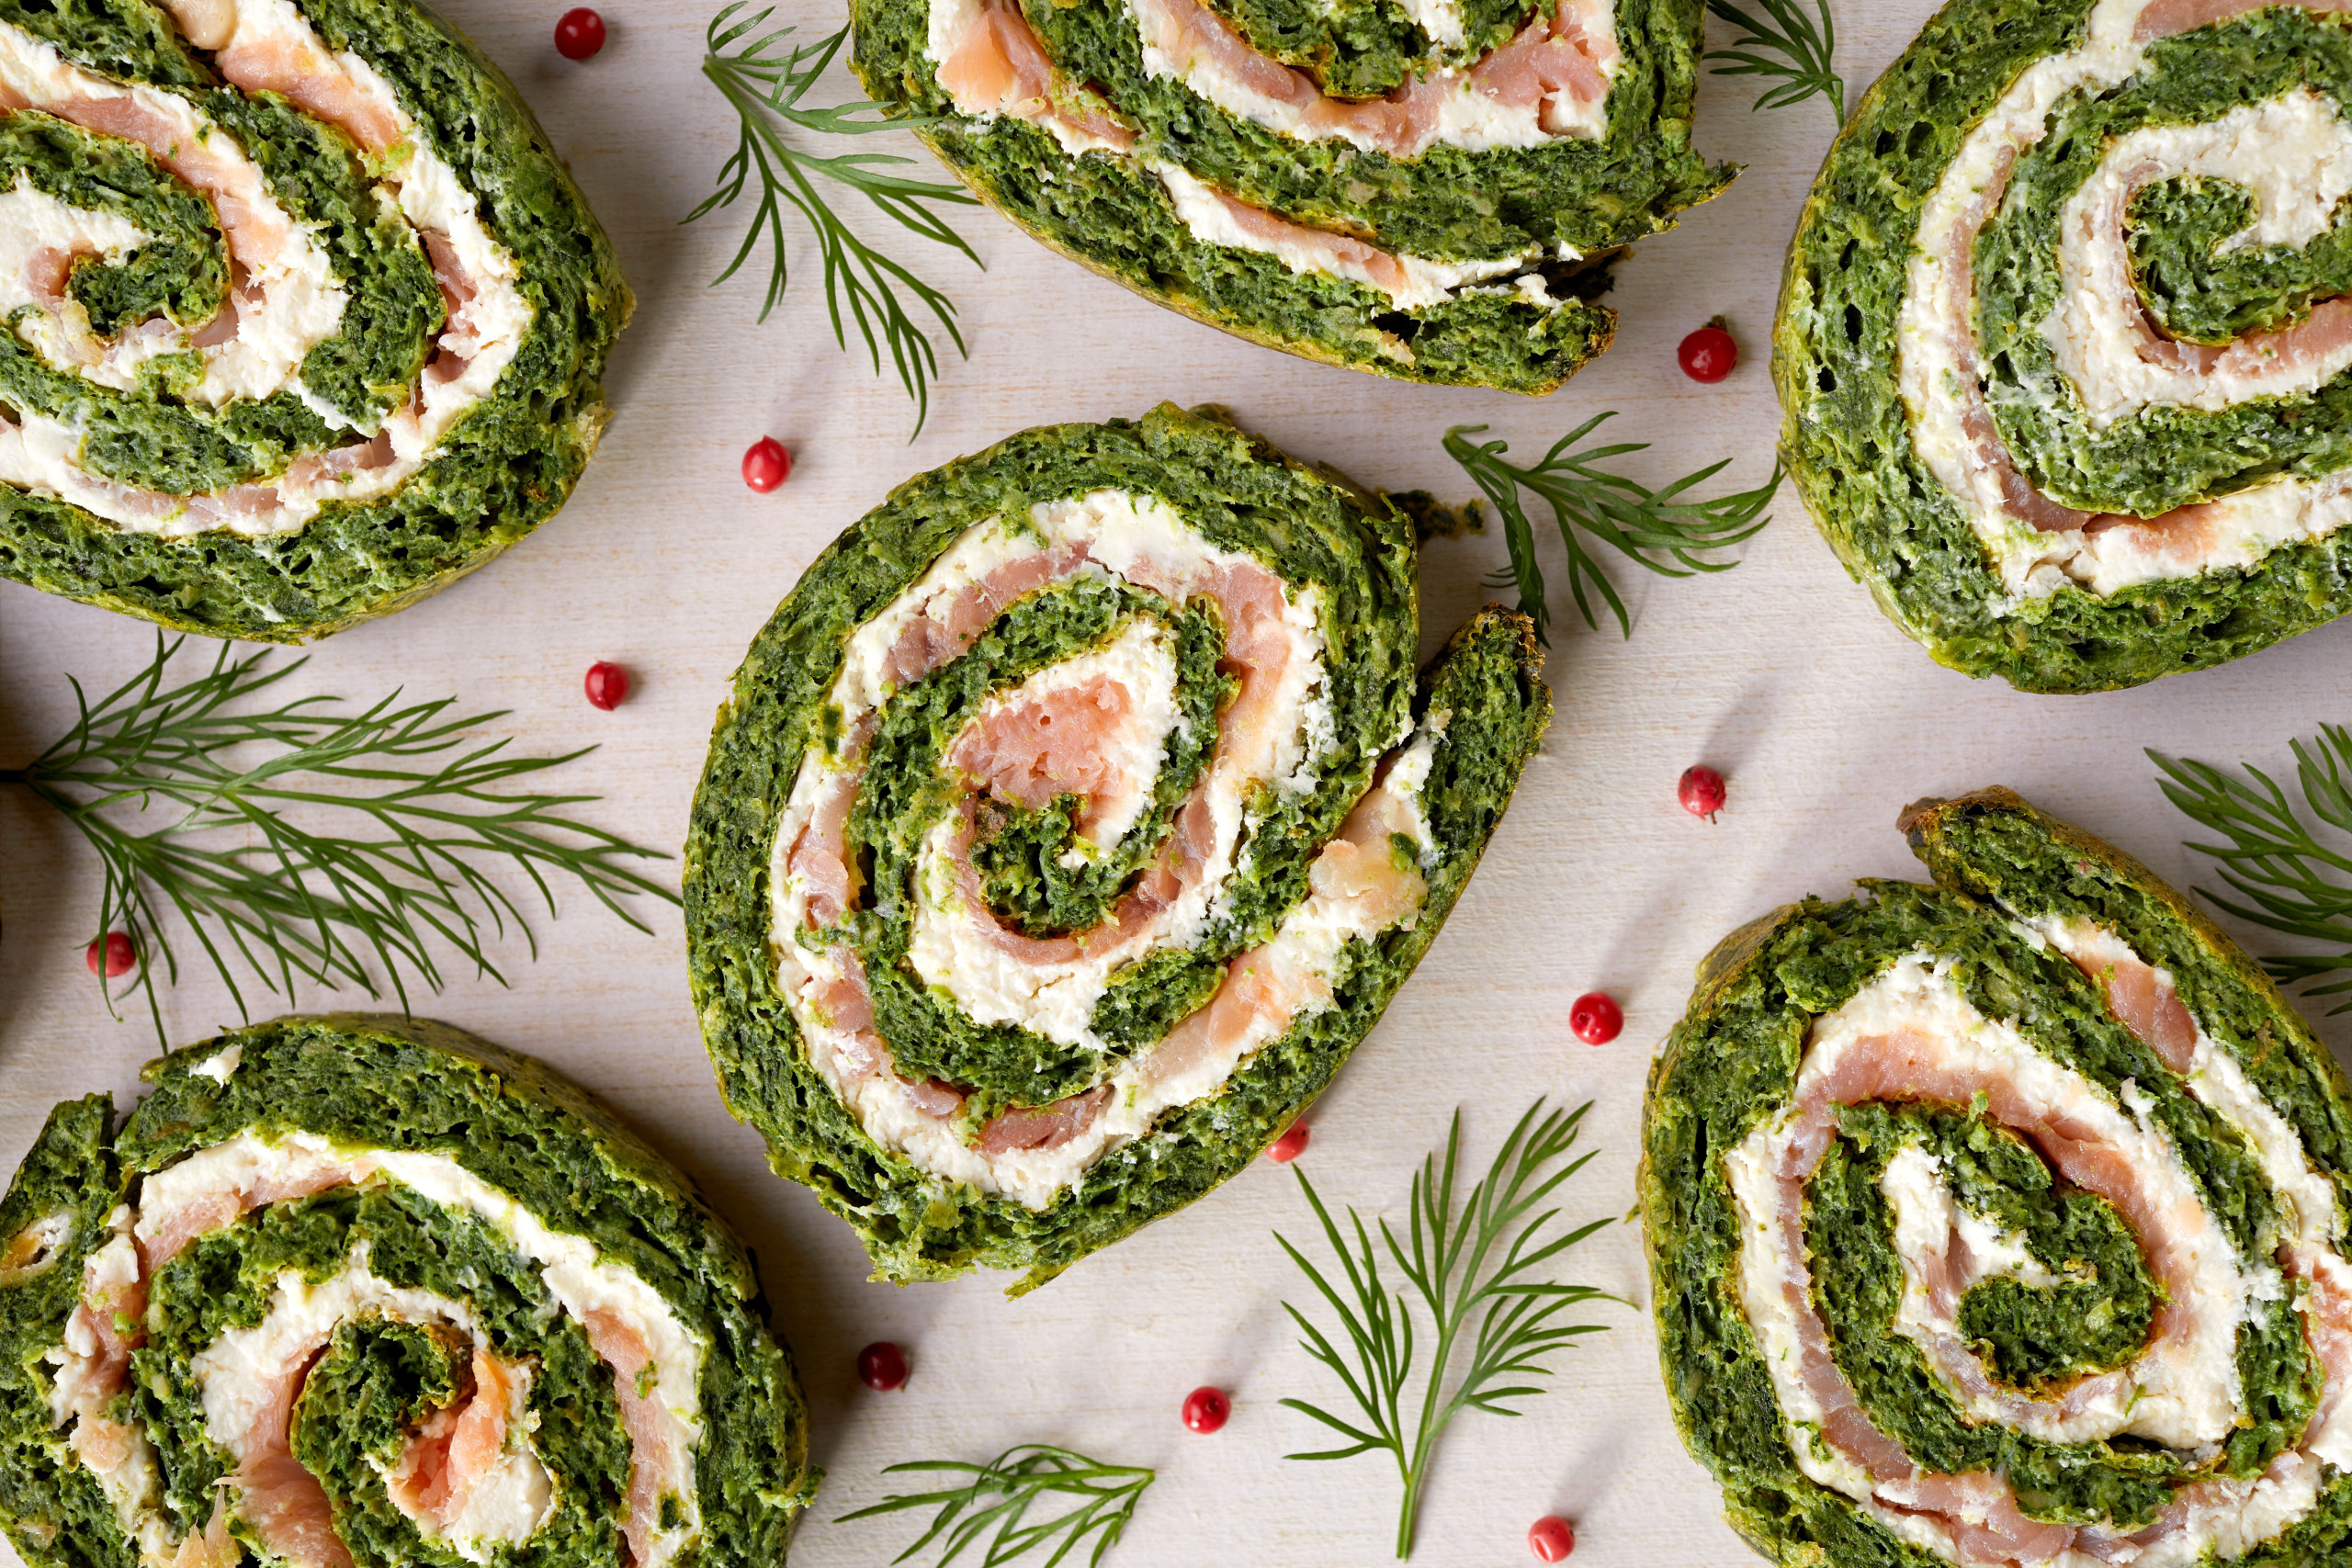 Spinach roulade stuffed with cream cheese and smoked salmon sliced on a white background